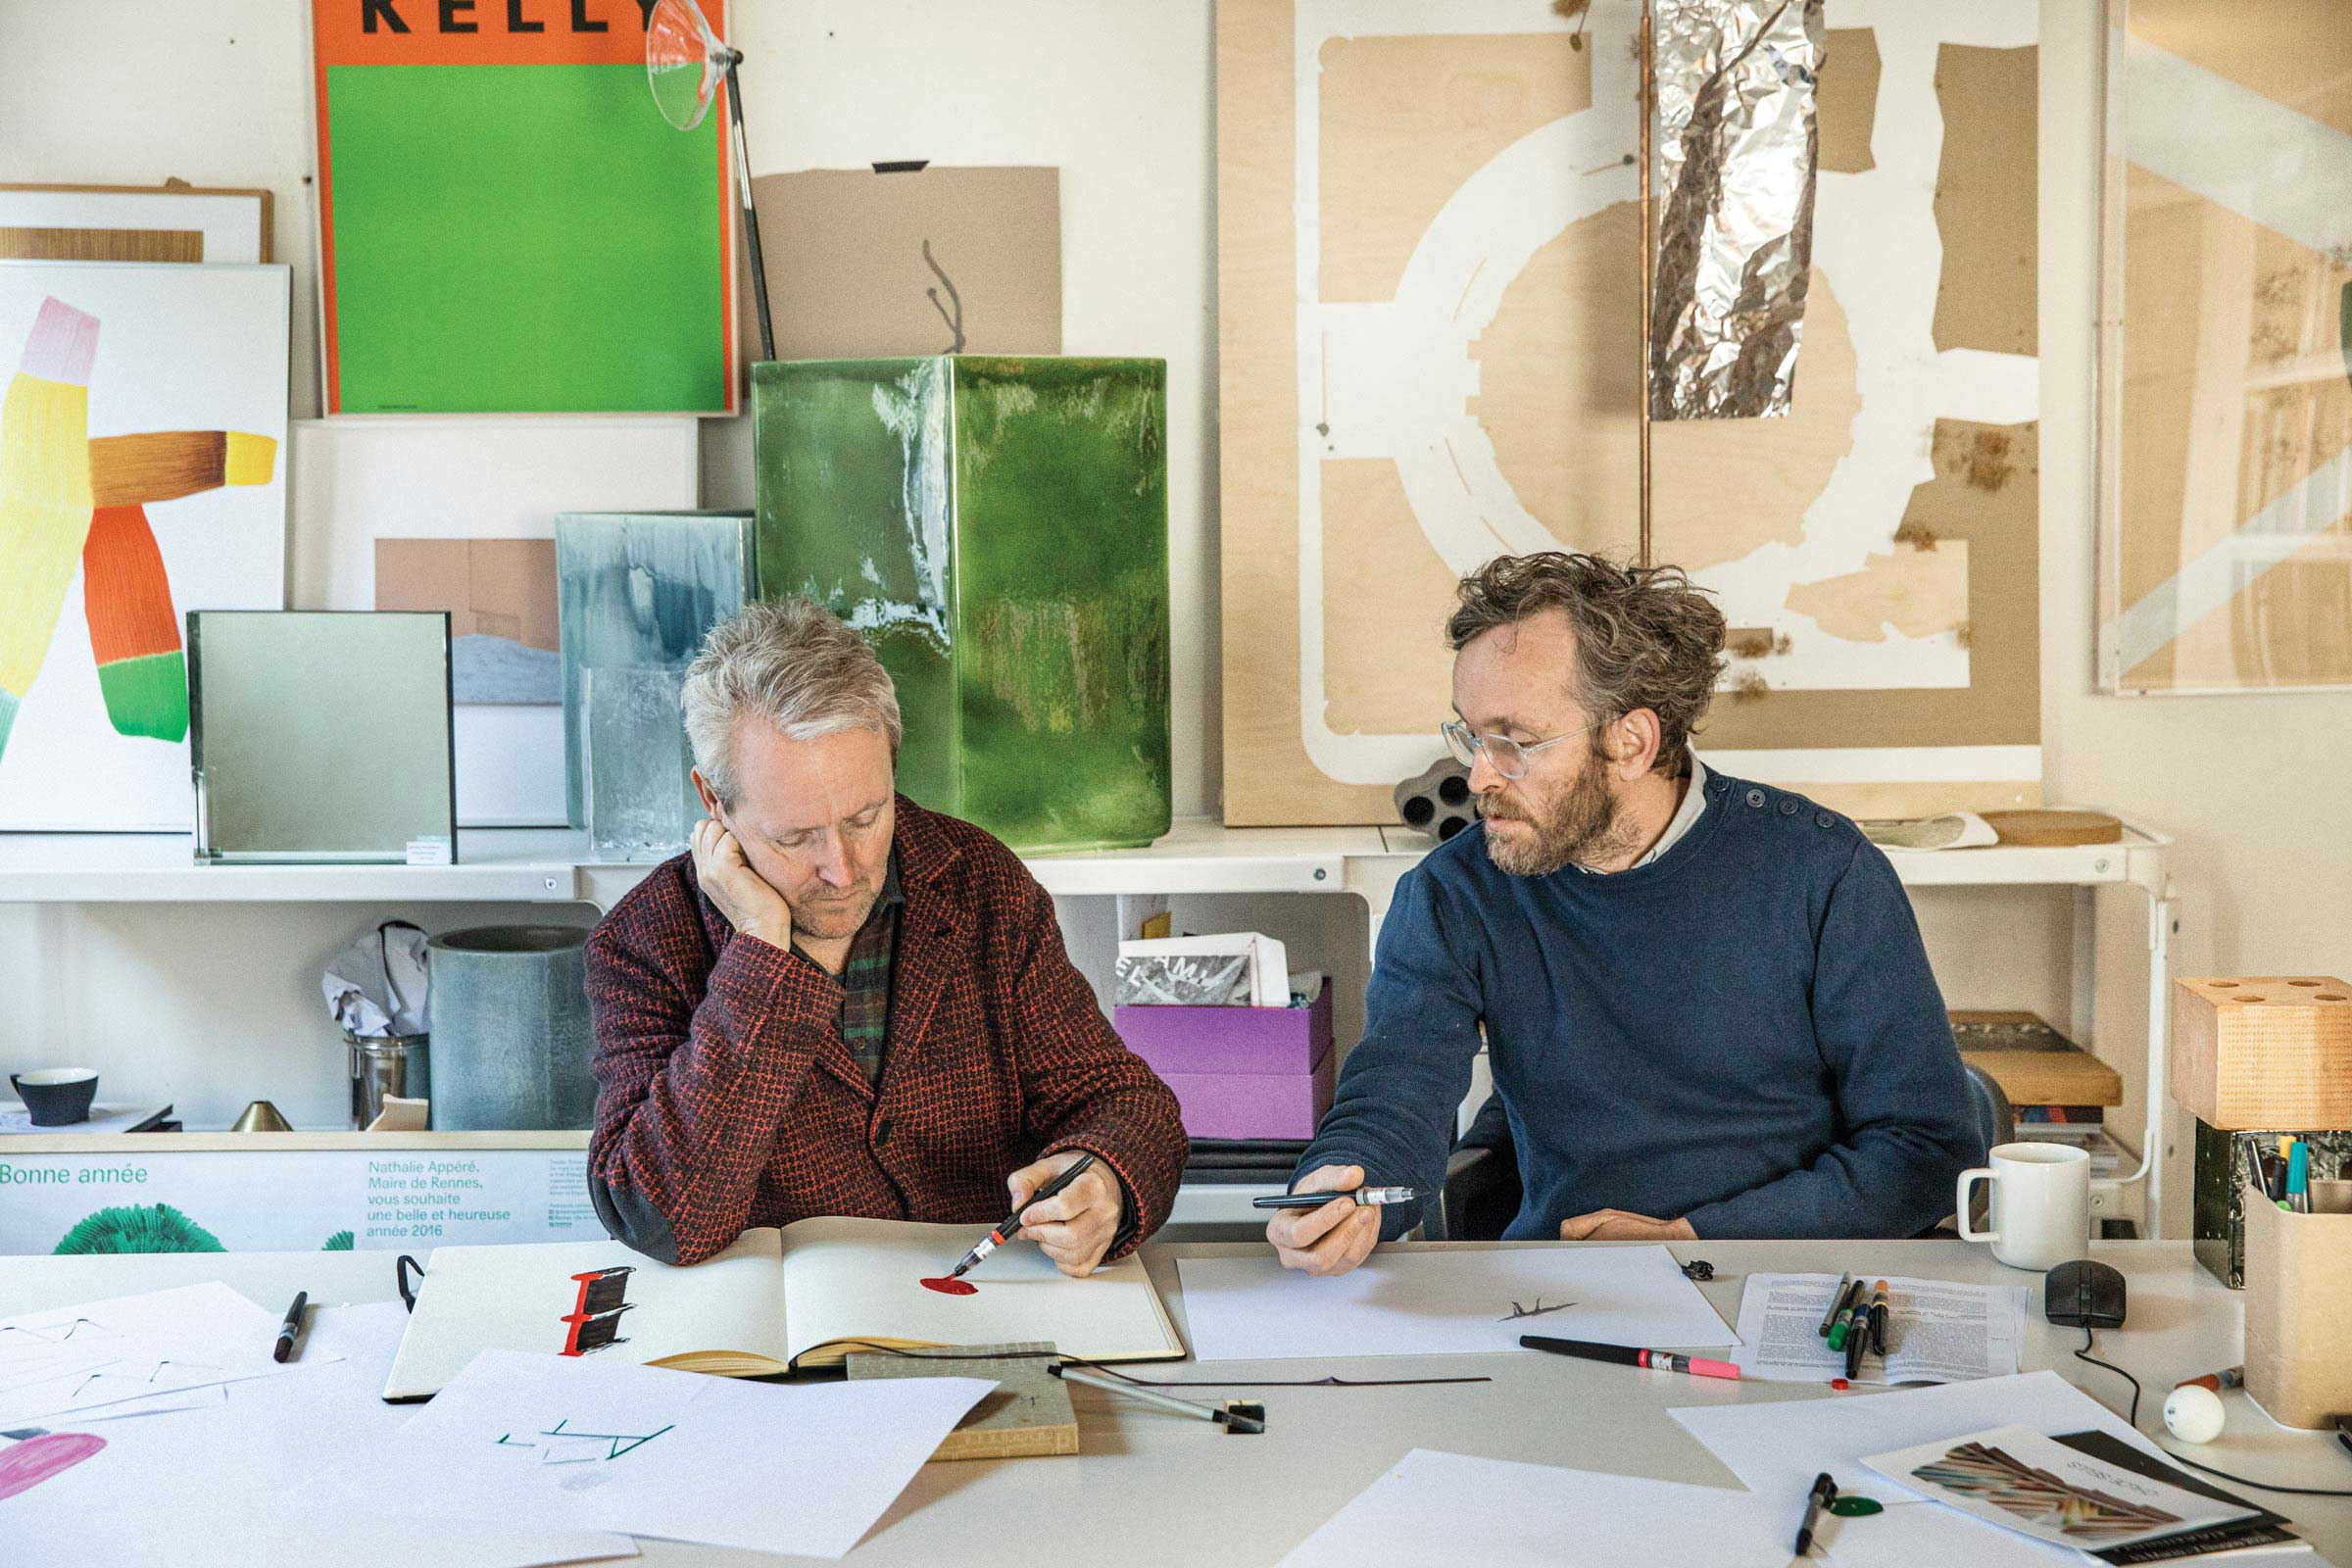 Ronan and Erwan Bouroullec on Making (and Breaking) Objects Every Day